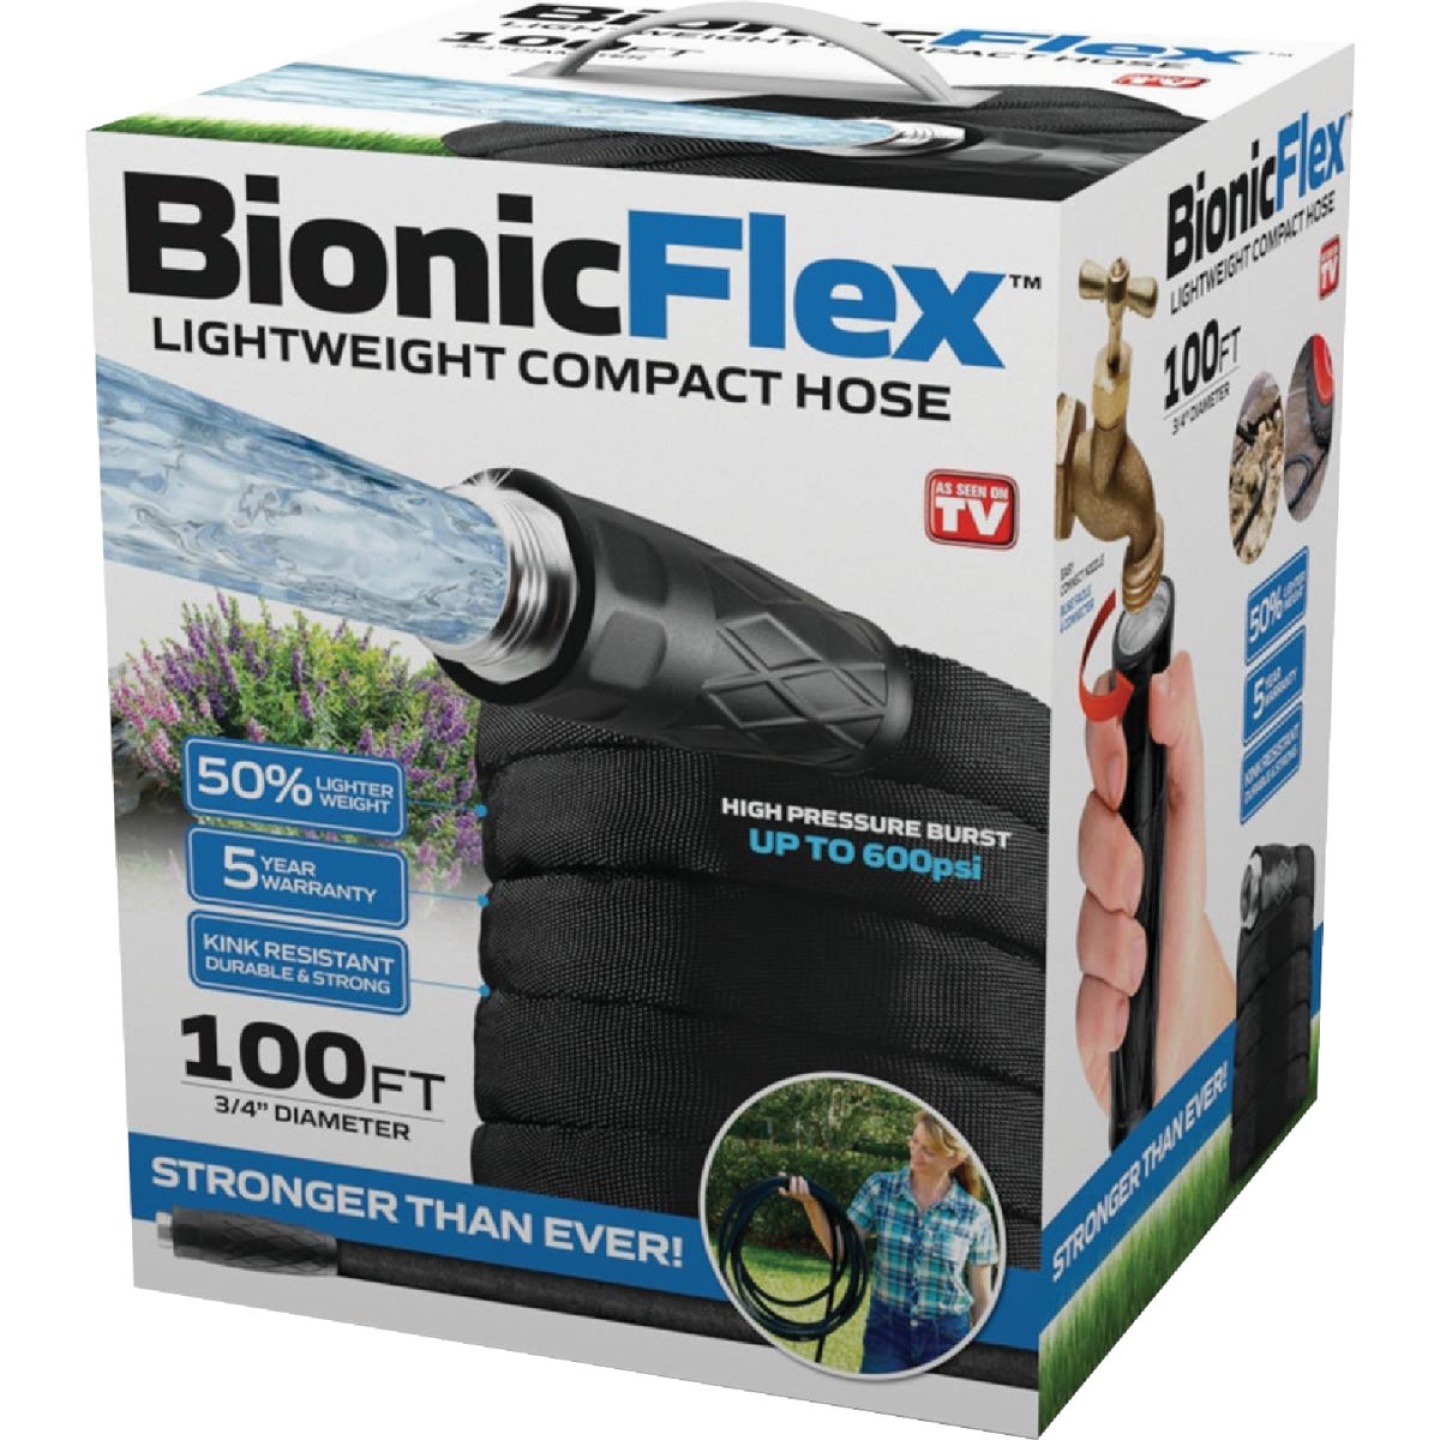 Bionic Force 5/8 In. x 100 Ft. Garden Hose Image 1